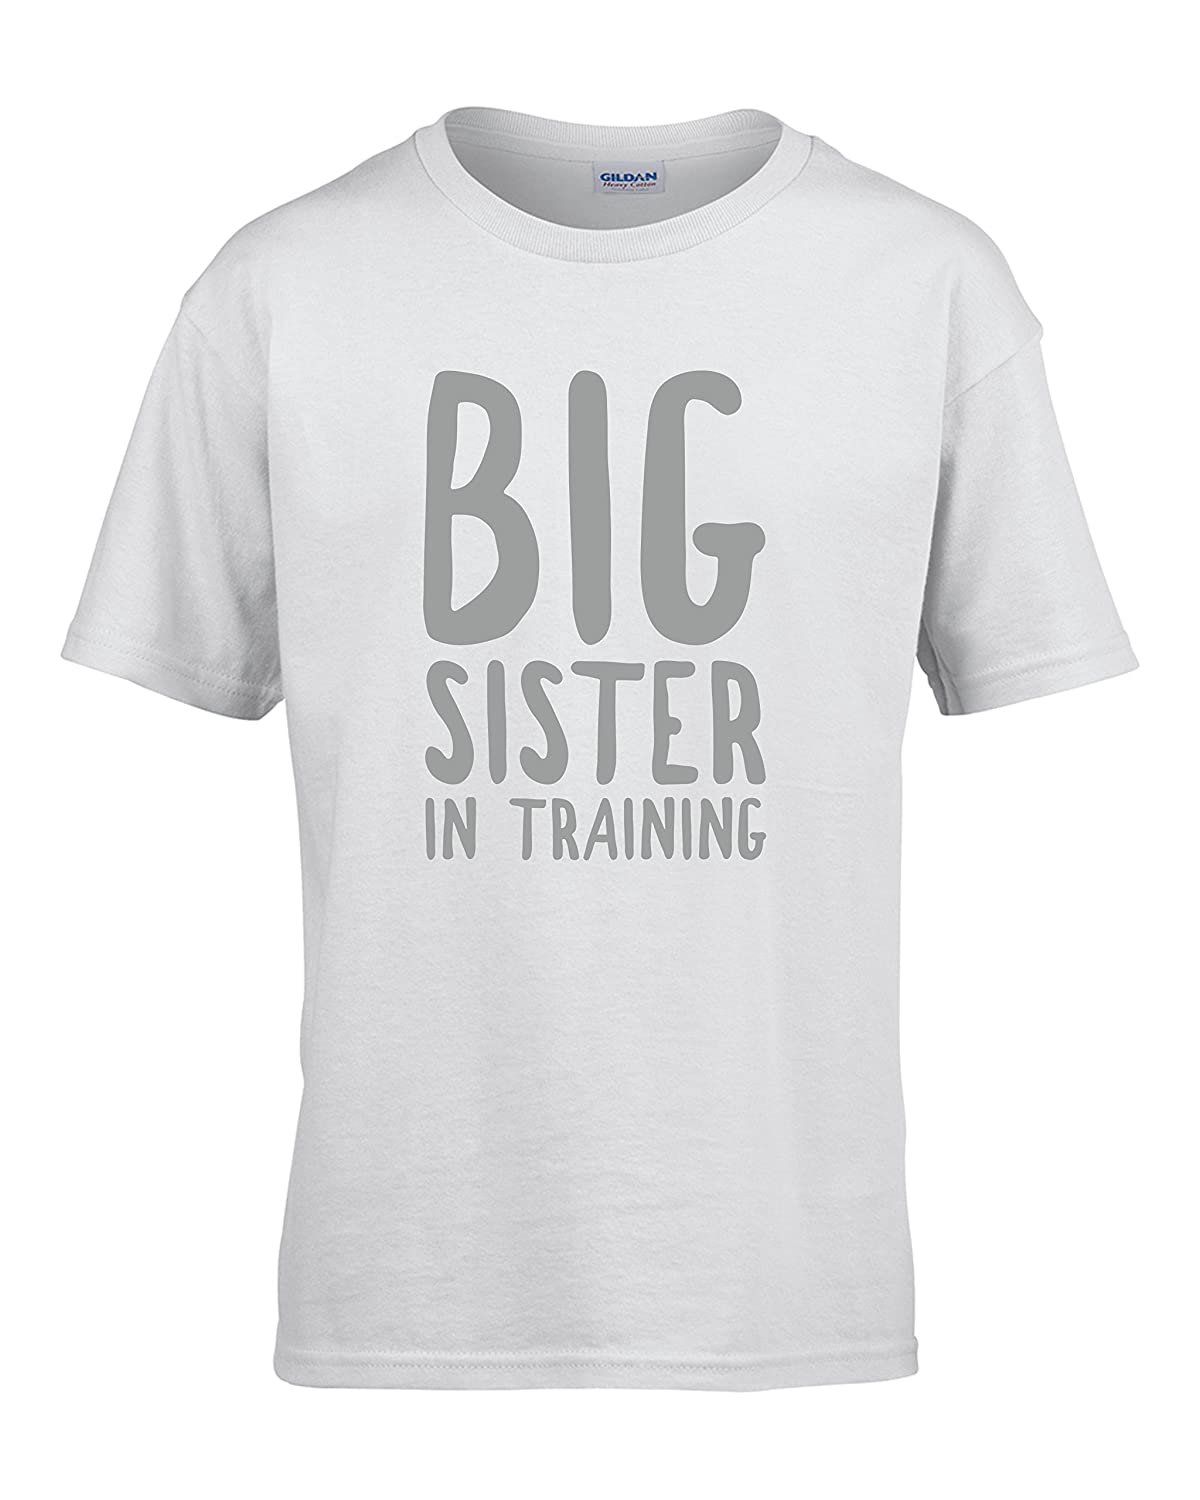 Big Sister In Training Girls T-Shirt Pregnancy Announcement Sister T-Shirt